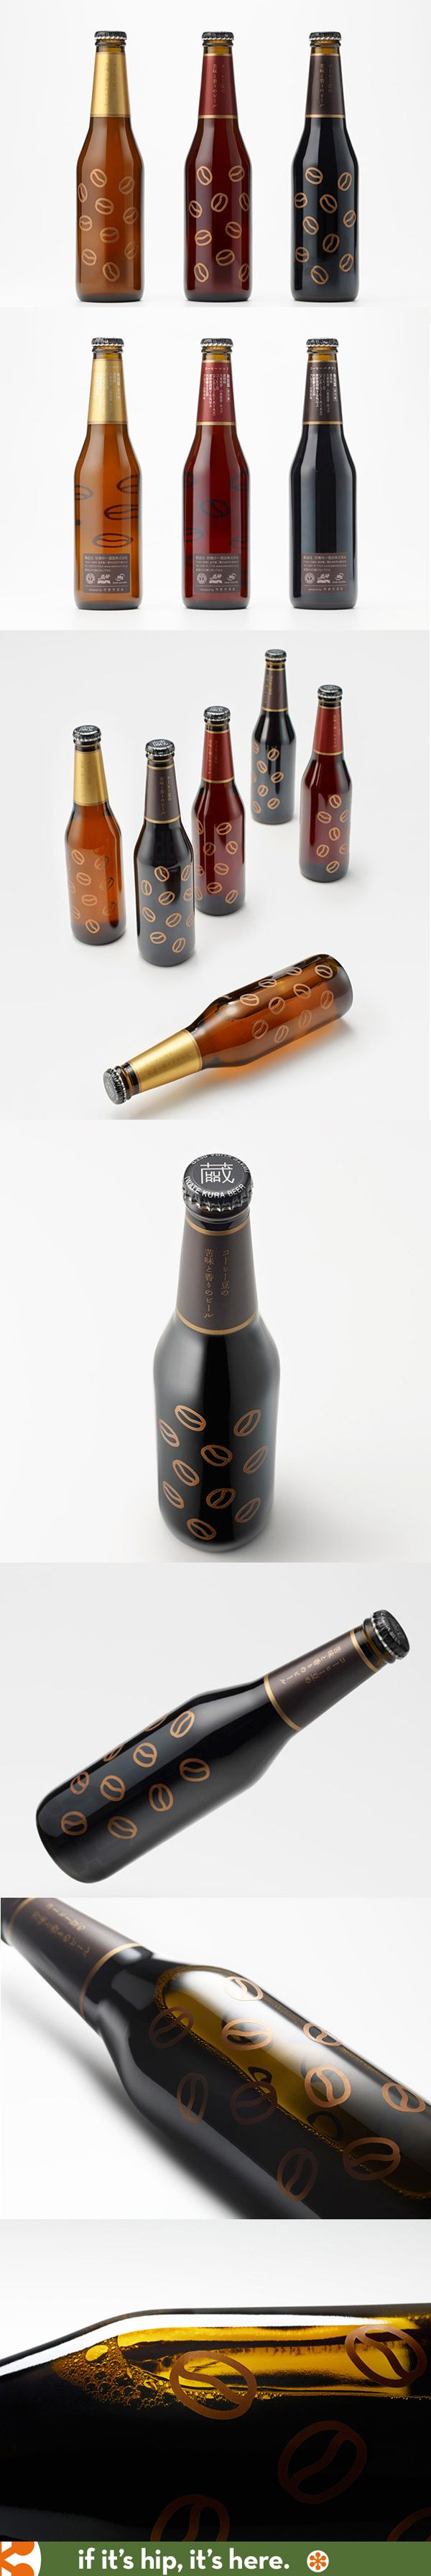 Iwate Kuro Coffee Beer bottles beautifully designed by Nendo